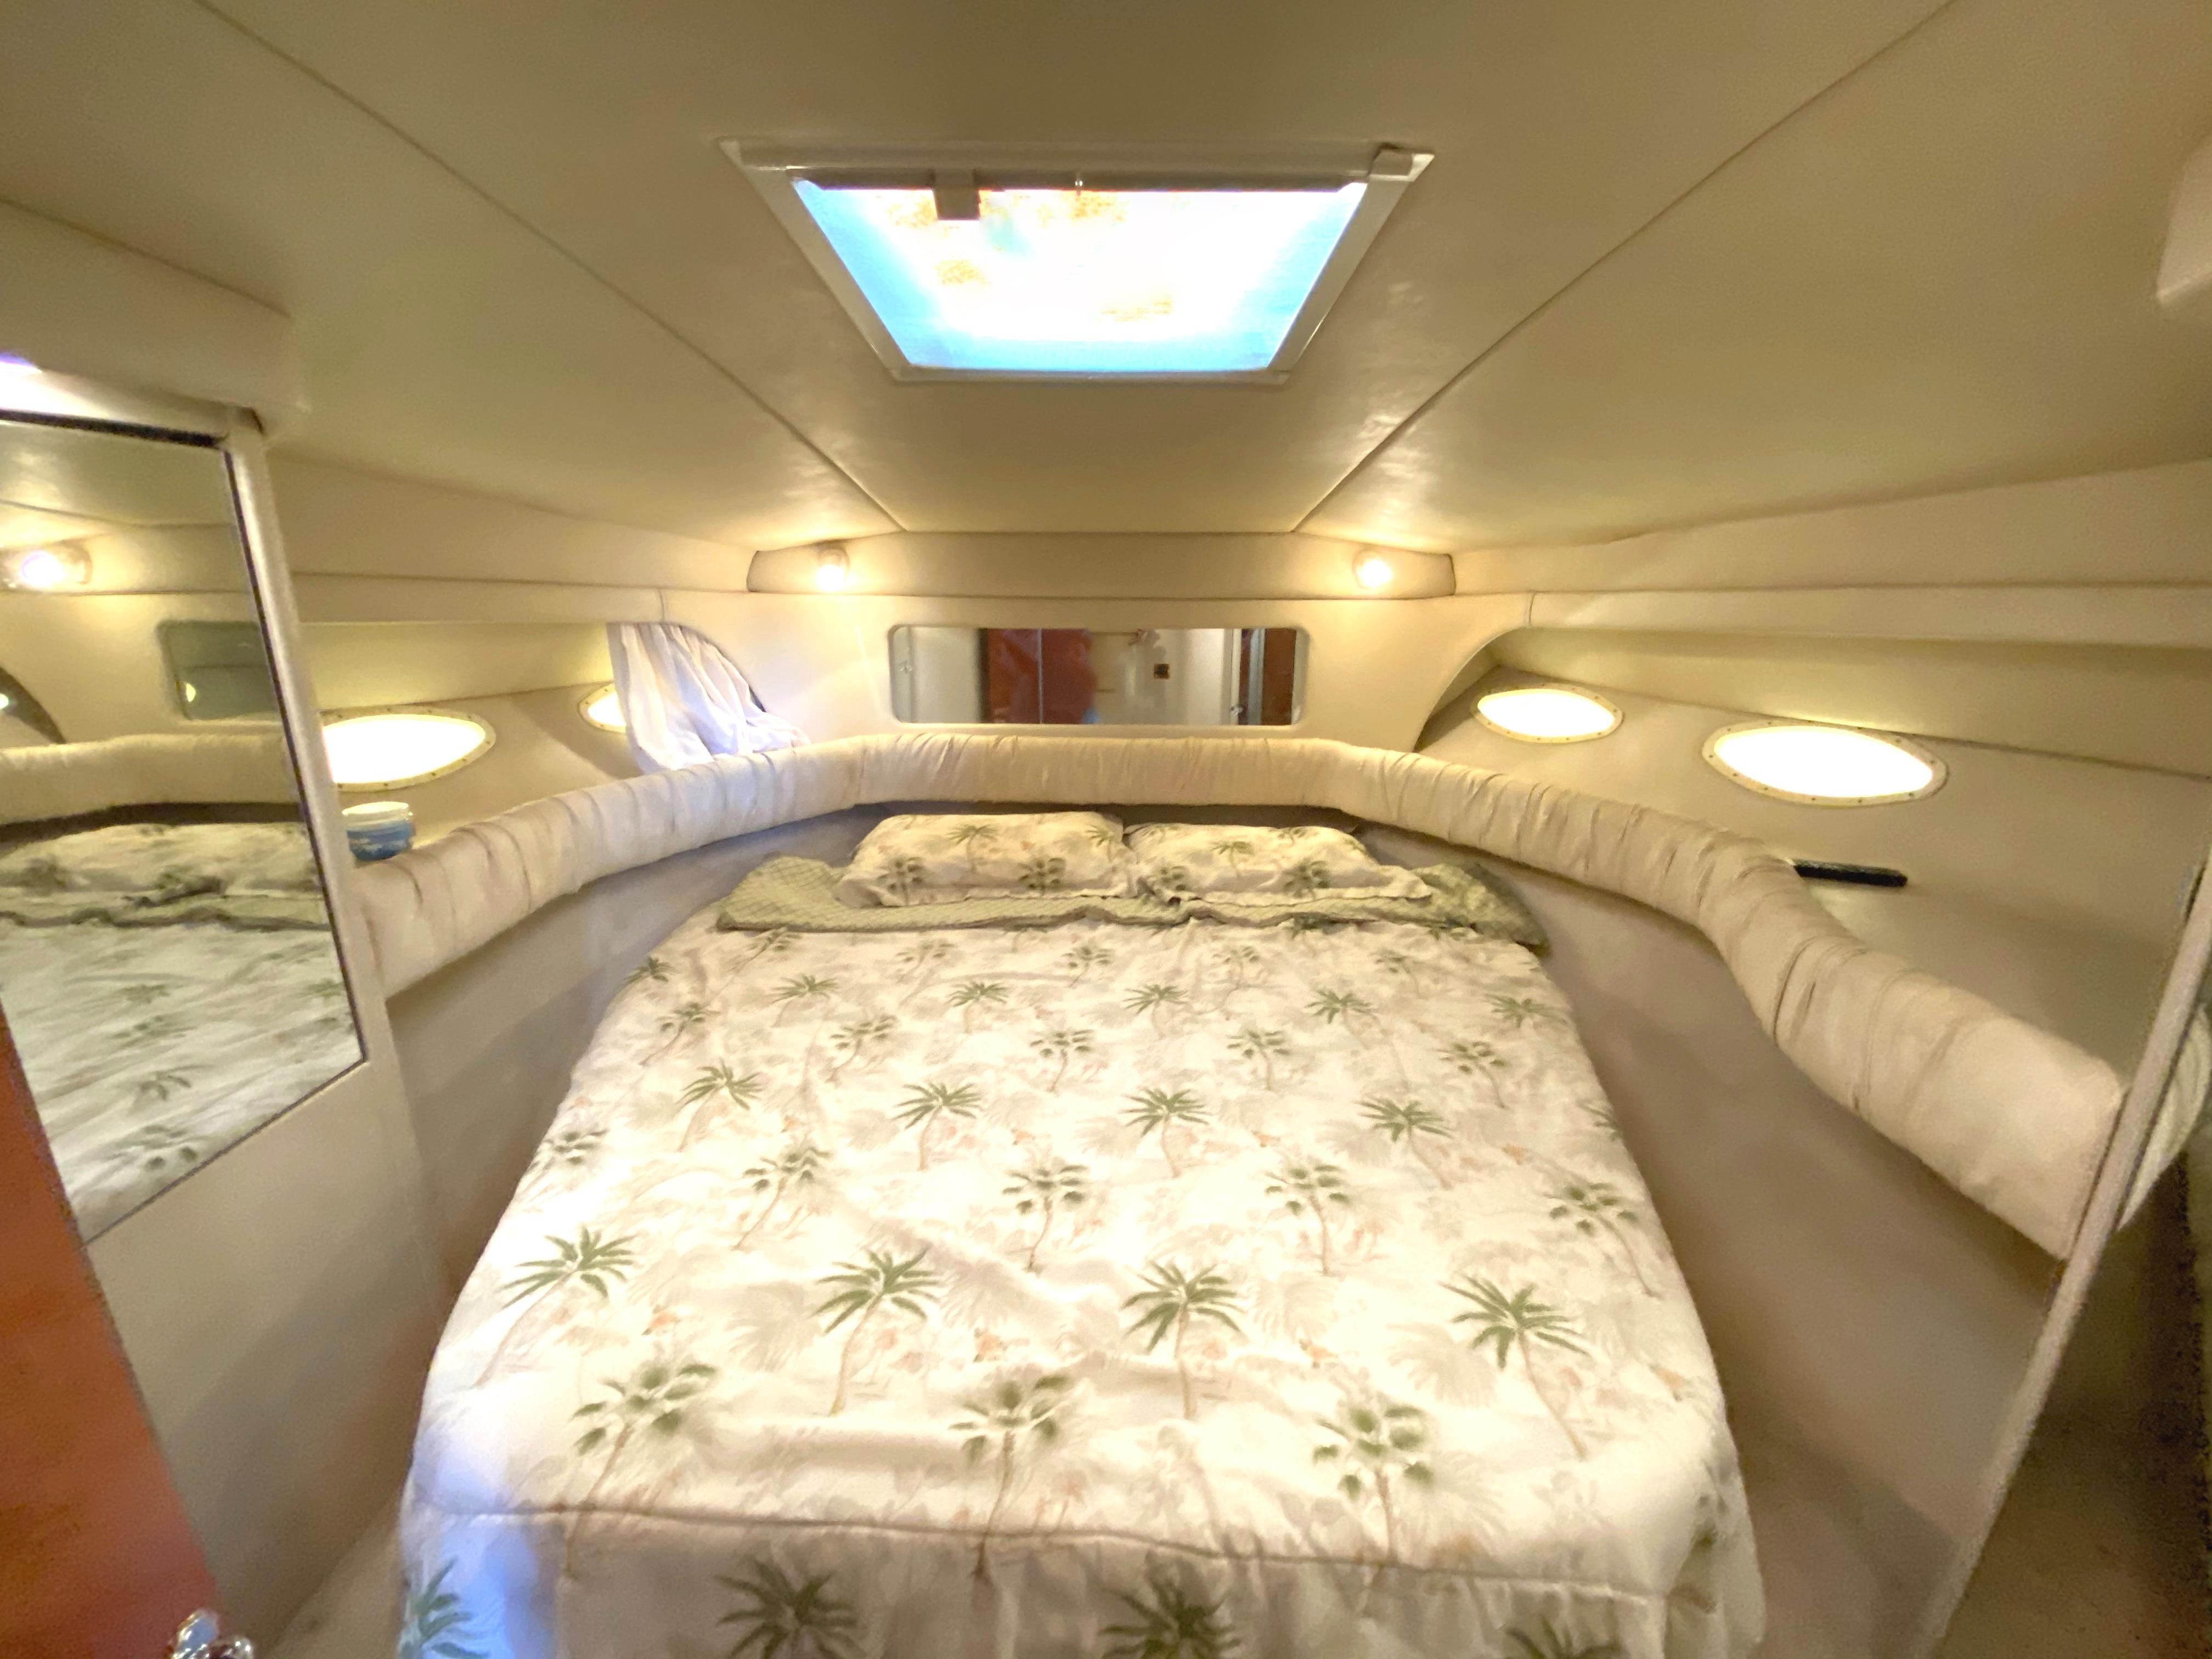 Sea Ray 370 Aft Cabin - forwar v-berth with island bed